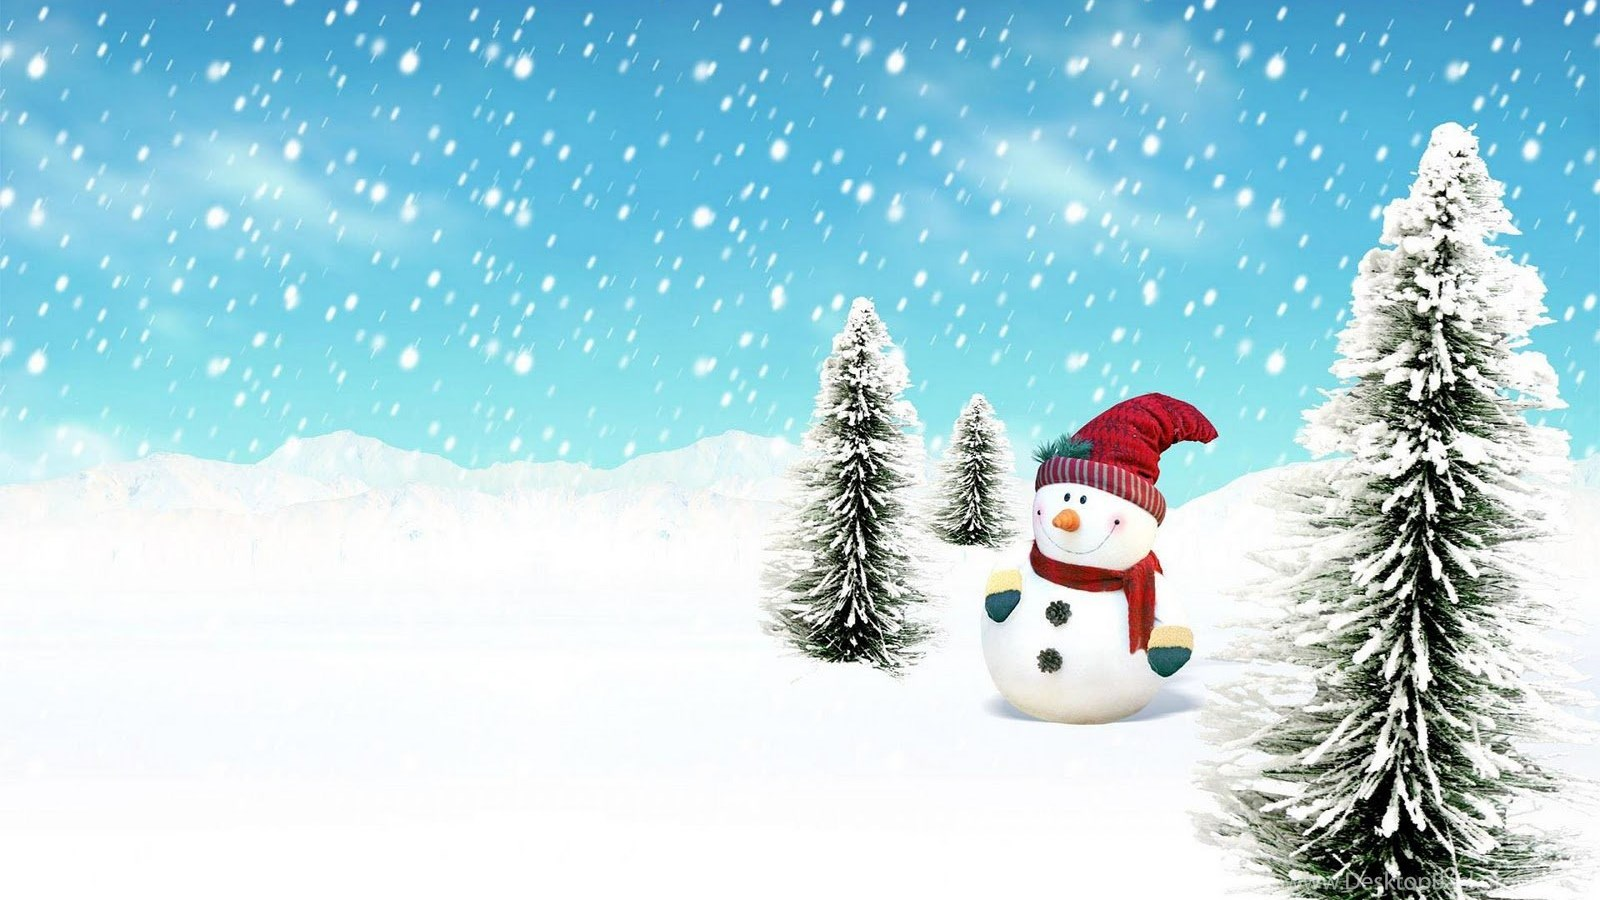 Christmas Snowman Wallpapers Picture Desktop Background